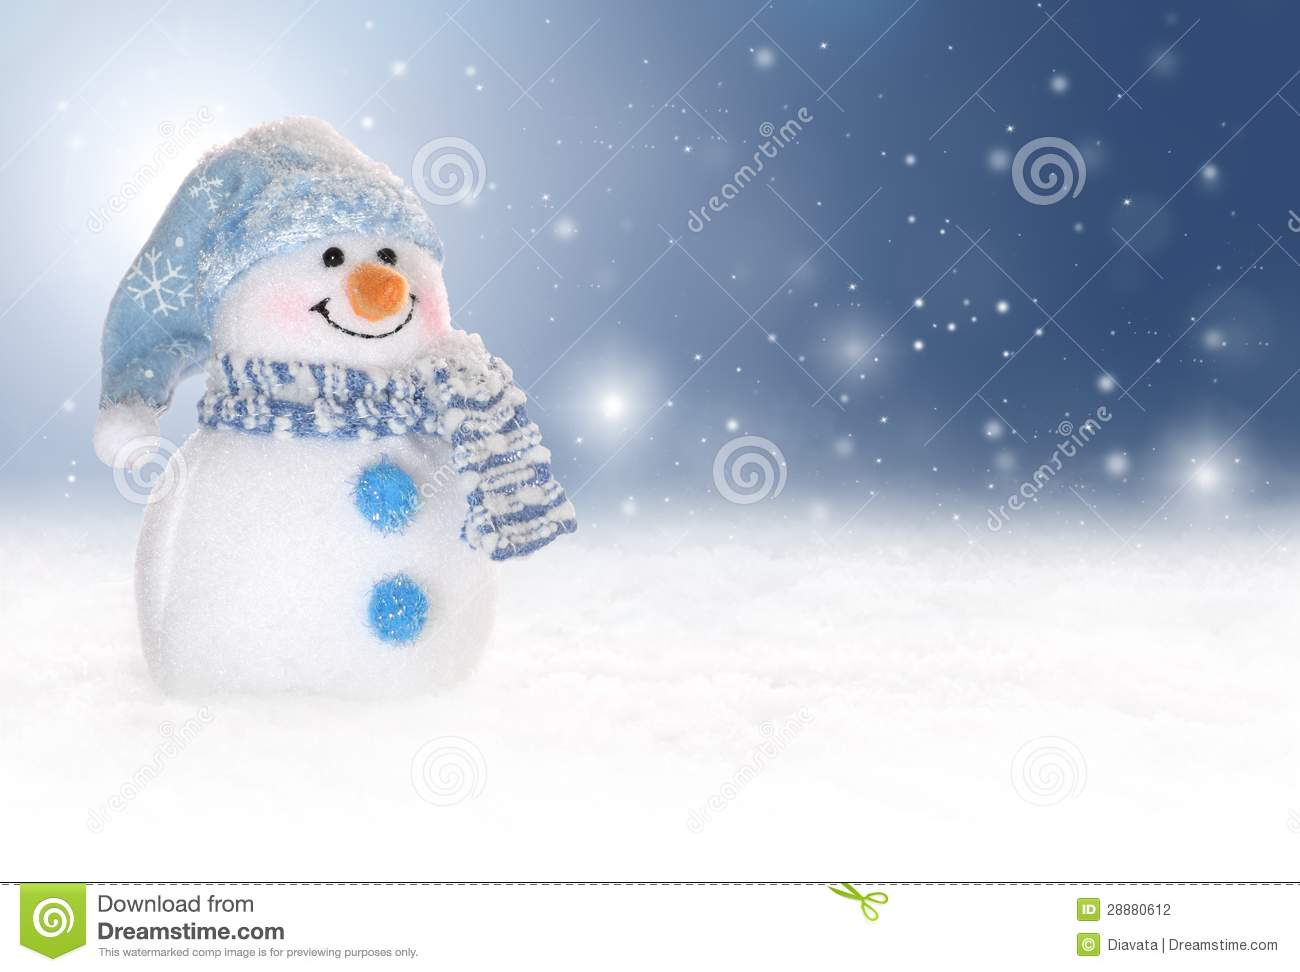 ... Photography: Winter background with a snowman, snow and snowflakes